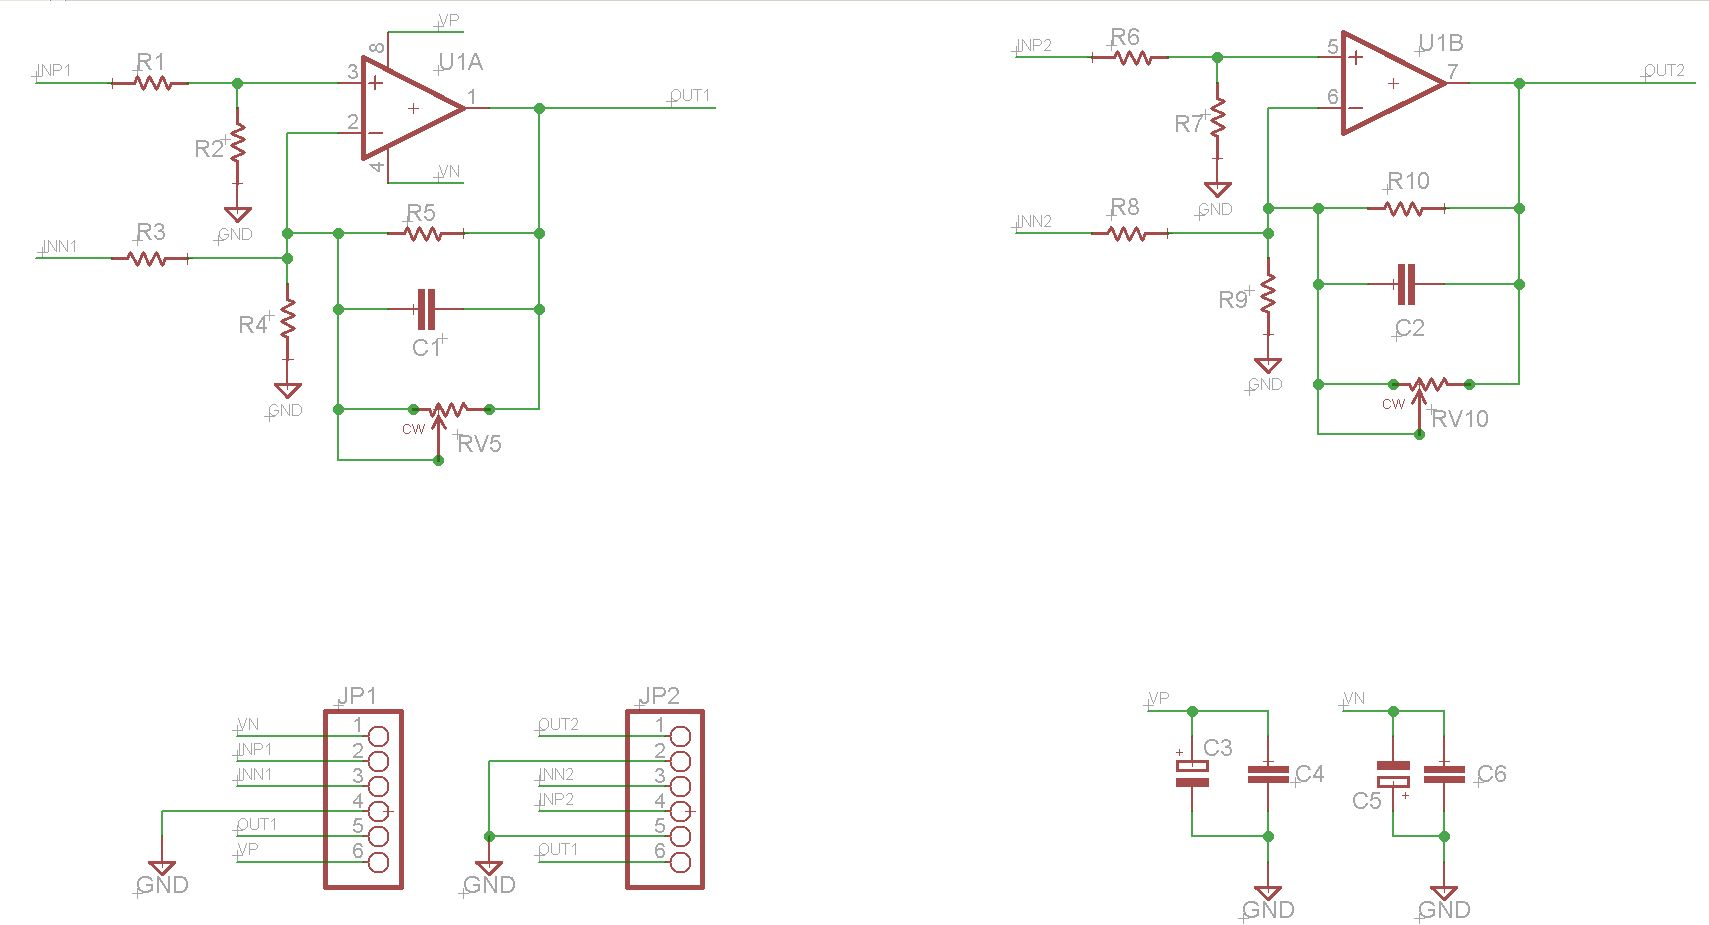 Opamp Experimenter Pcb Non Inverting Amplifier Circuit Diagram You Can See It Has Locations For Resistors To Make All The Standard Circuits And Differential Also A Spot Capacitor